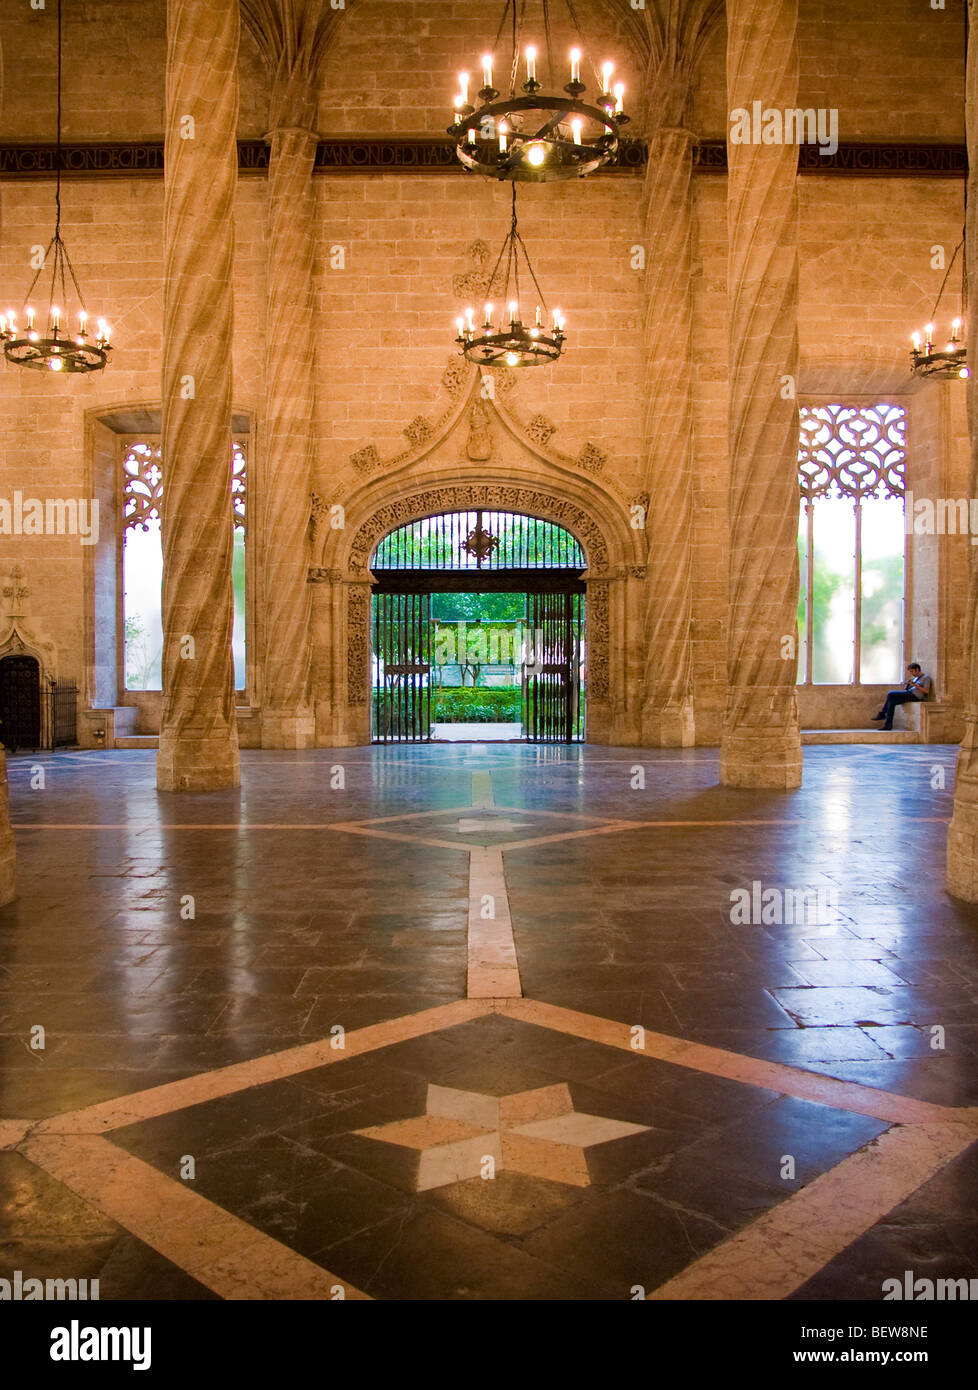 Hall of the Silk Exchange (La Lonja de la Seda) in Valencia, Spain Stock Photo